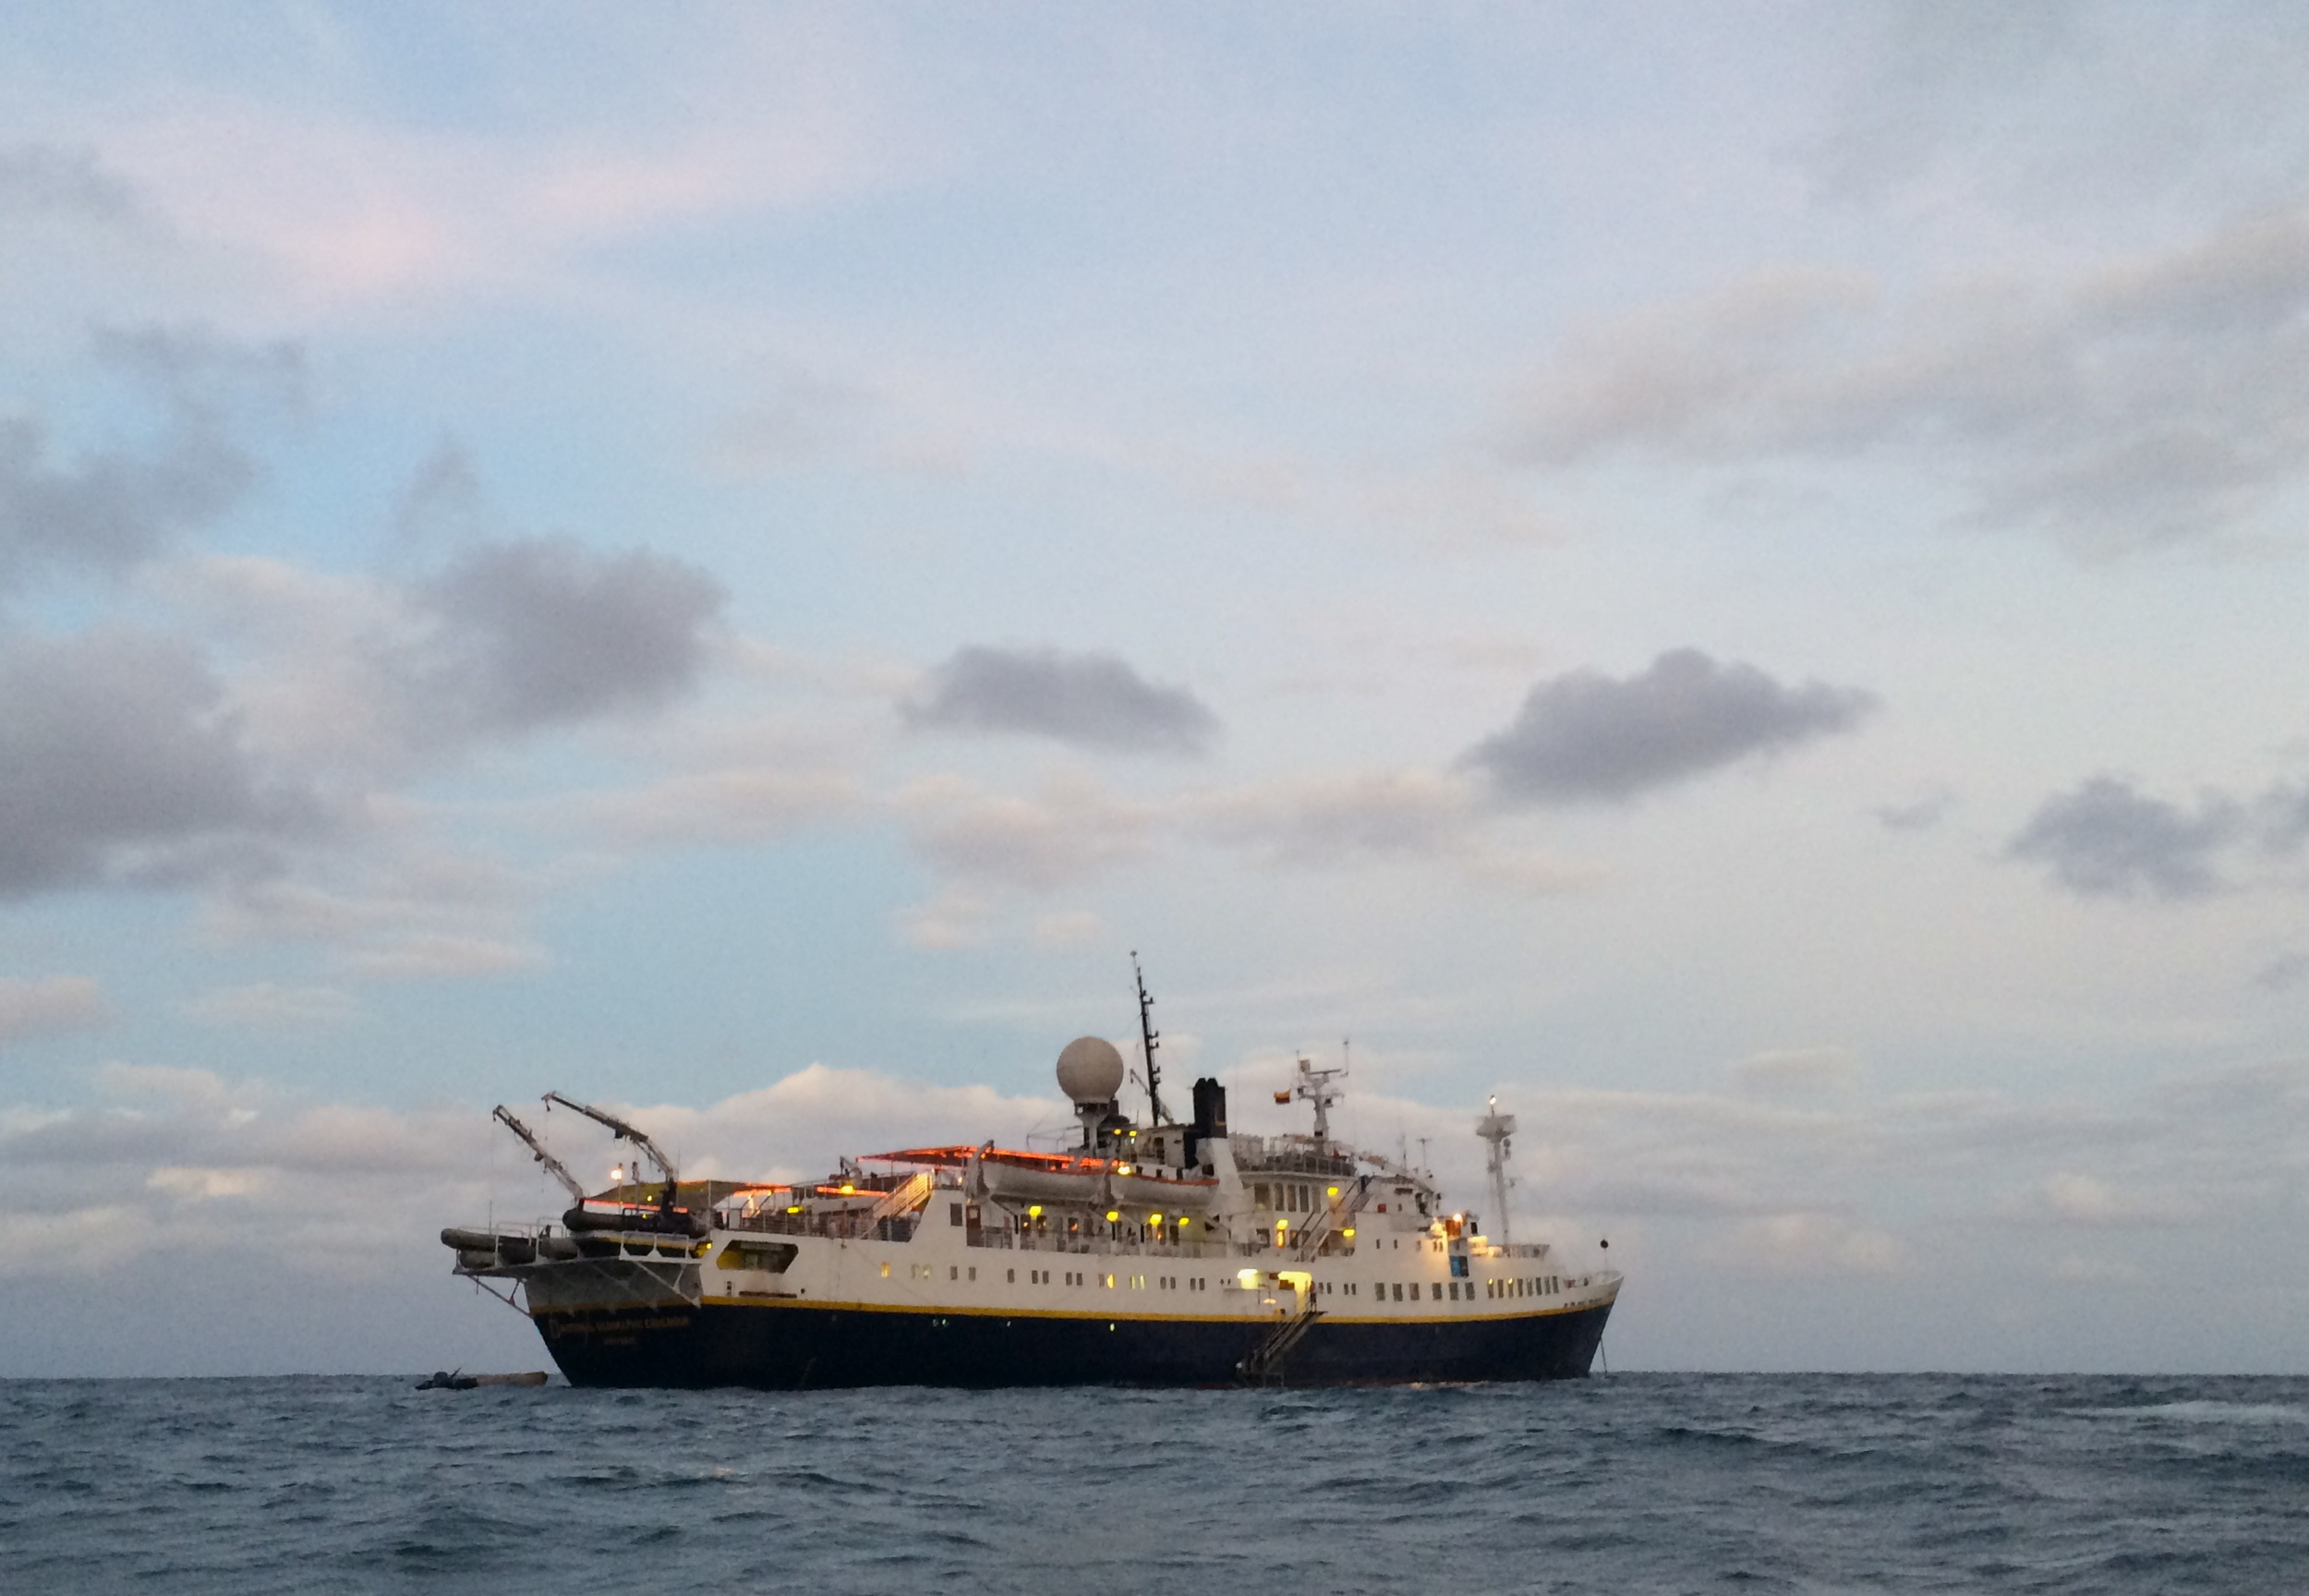 National Geographic Endeavour (Photograph by Alizé Carrère)